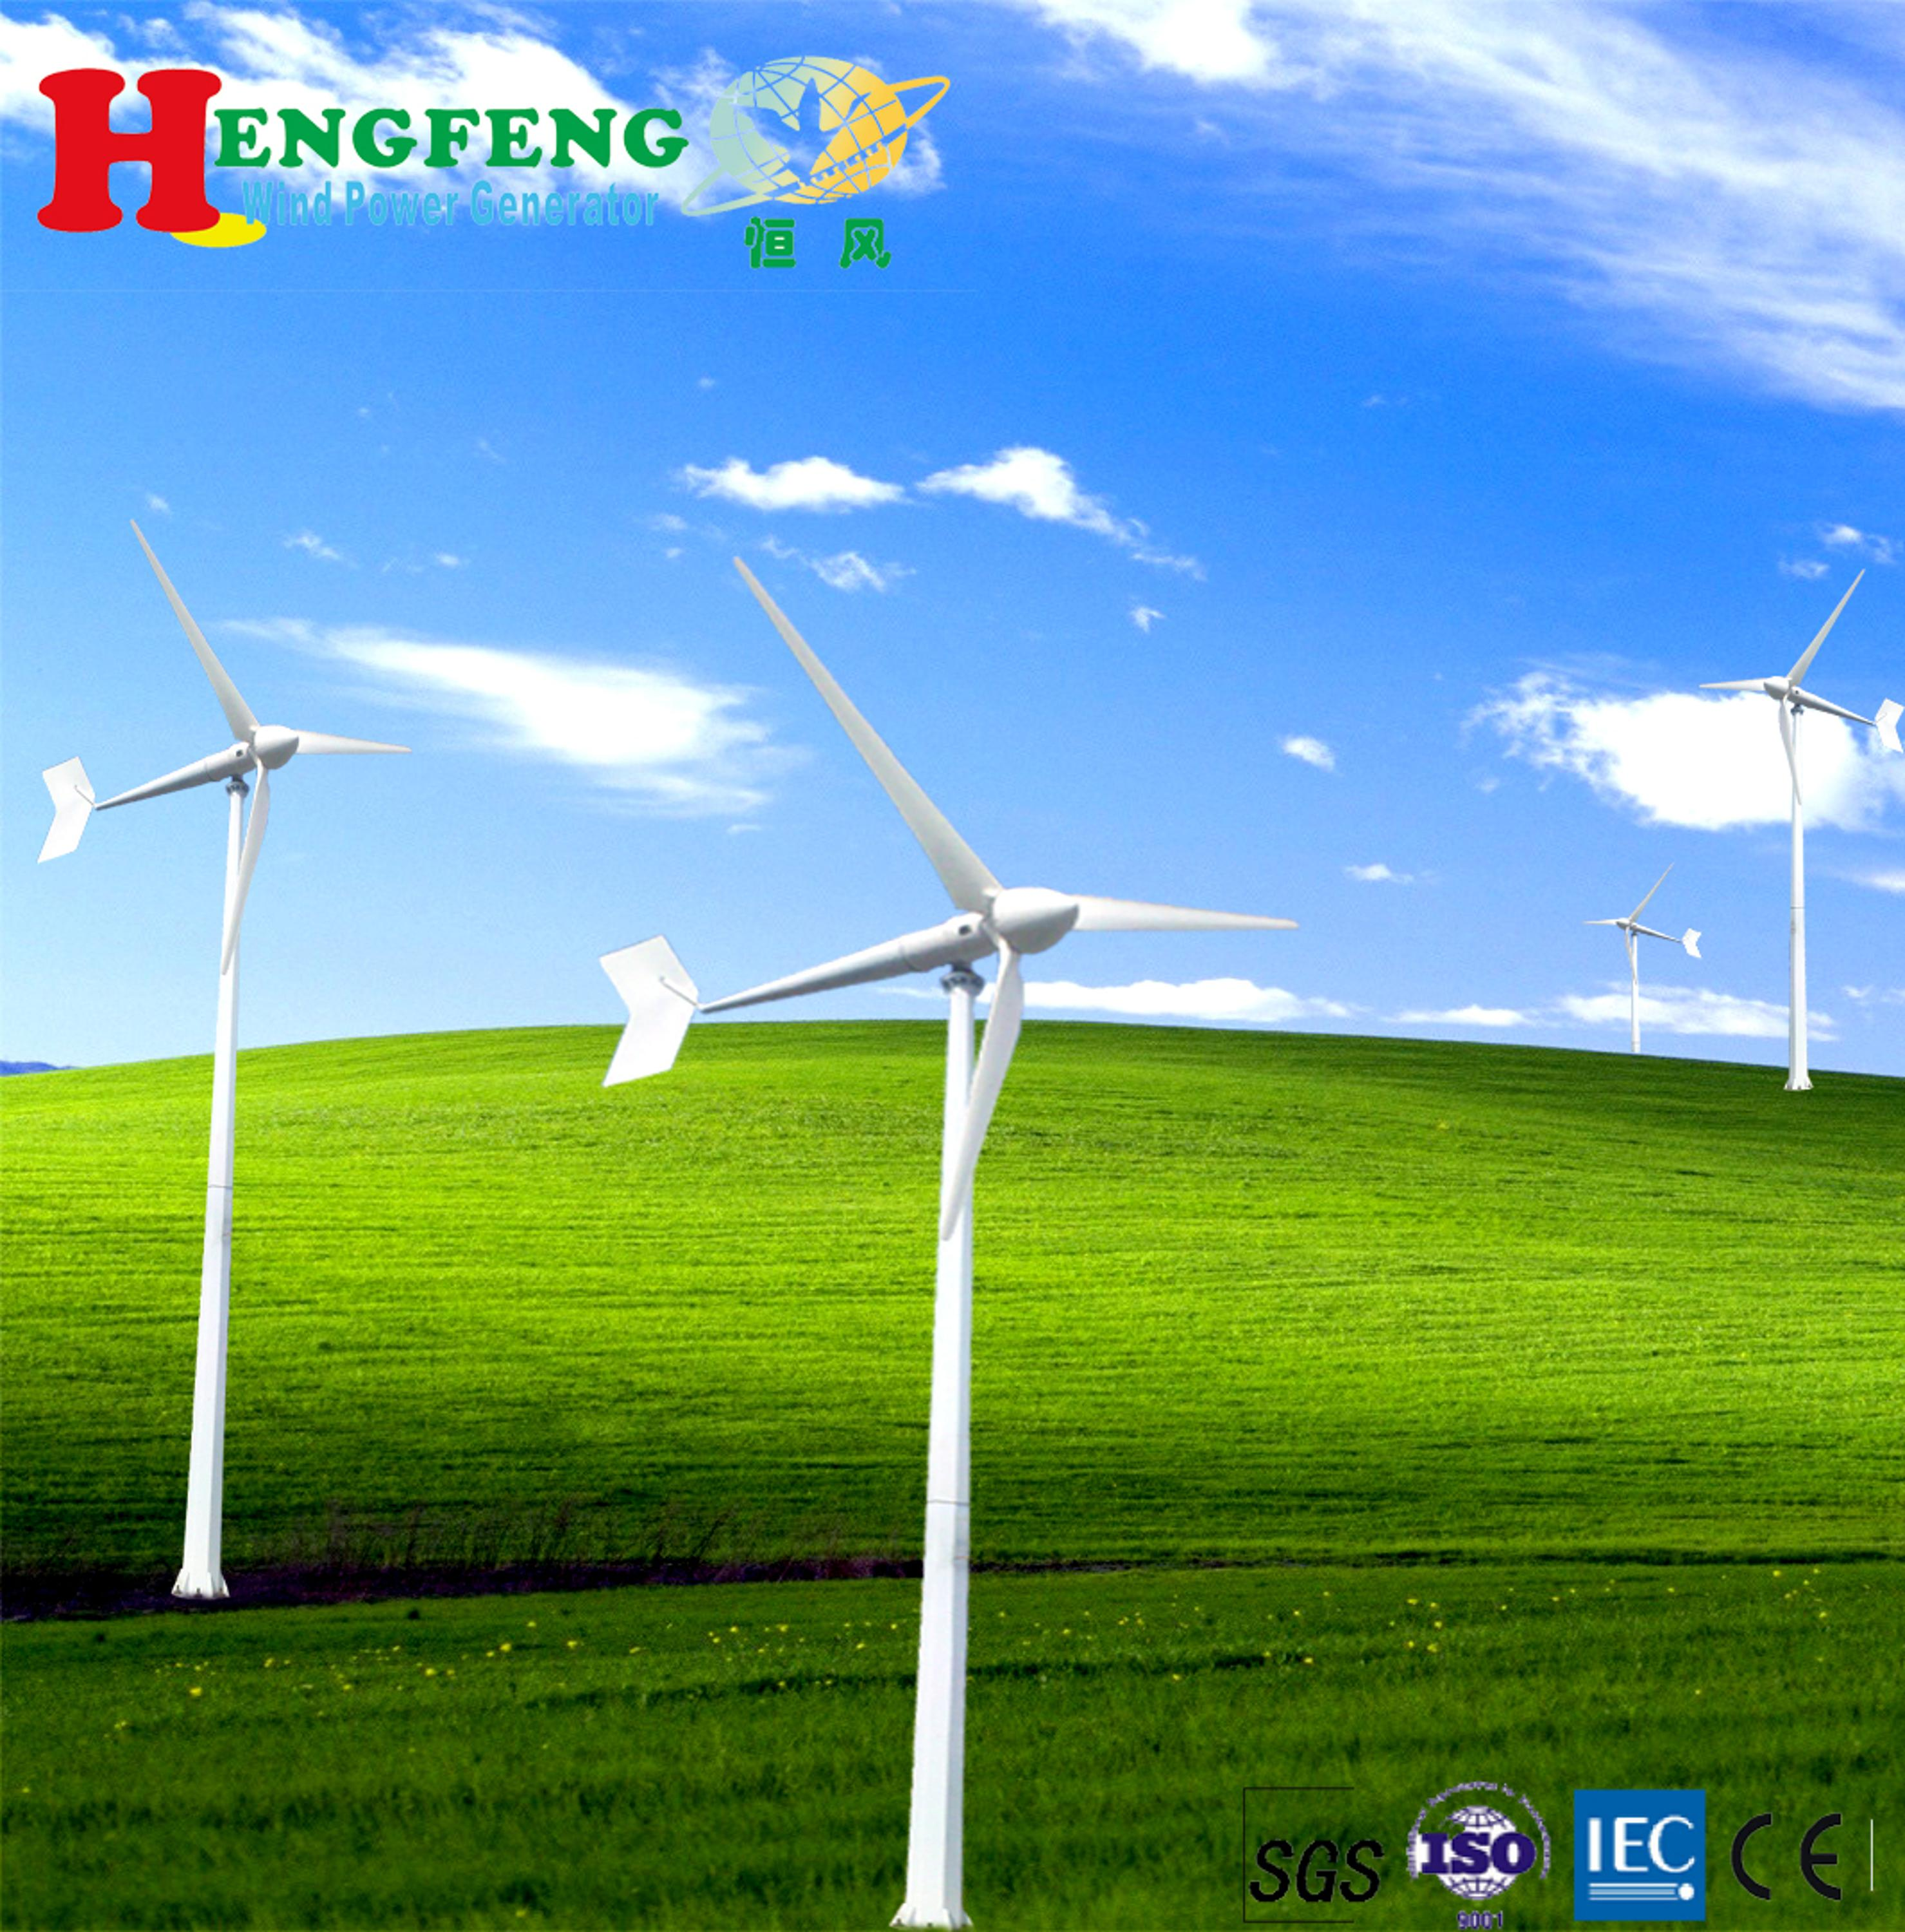 5kw Wind Turbine Cost For Home 5kw Wind Turbine Cost For Home